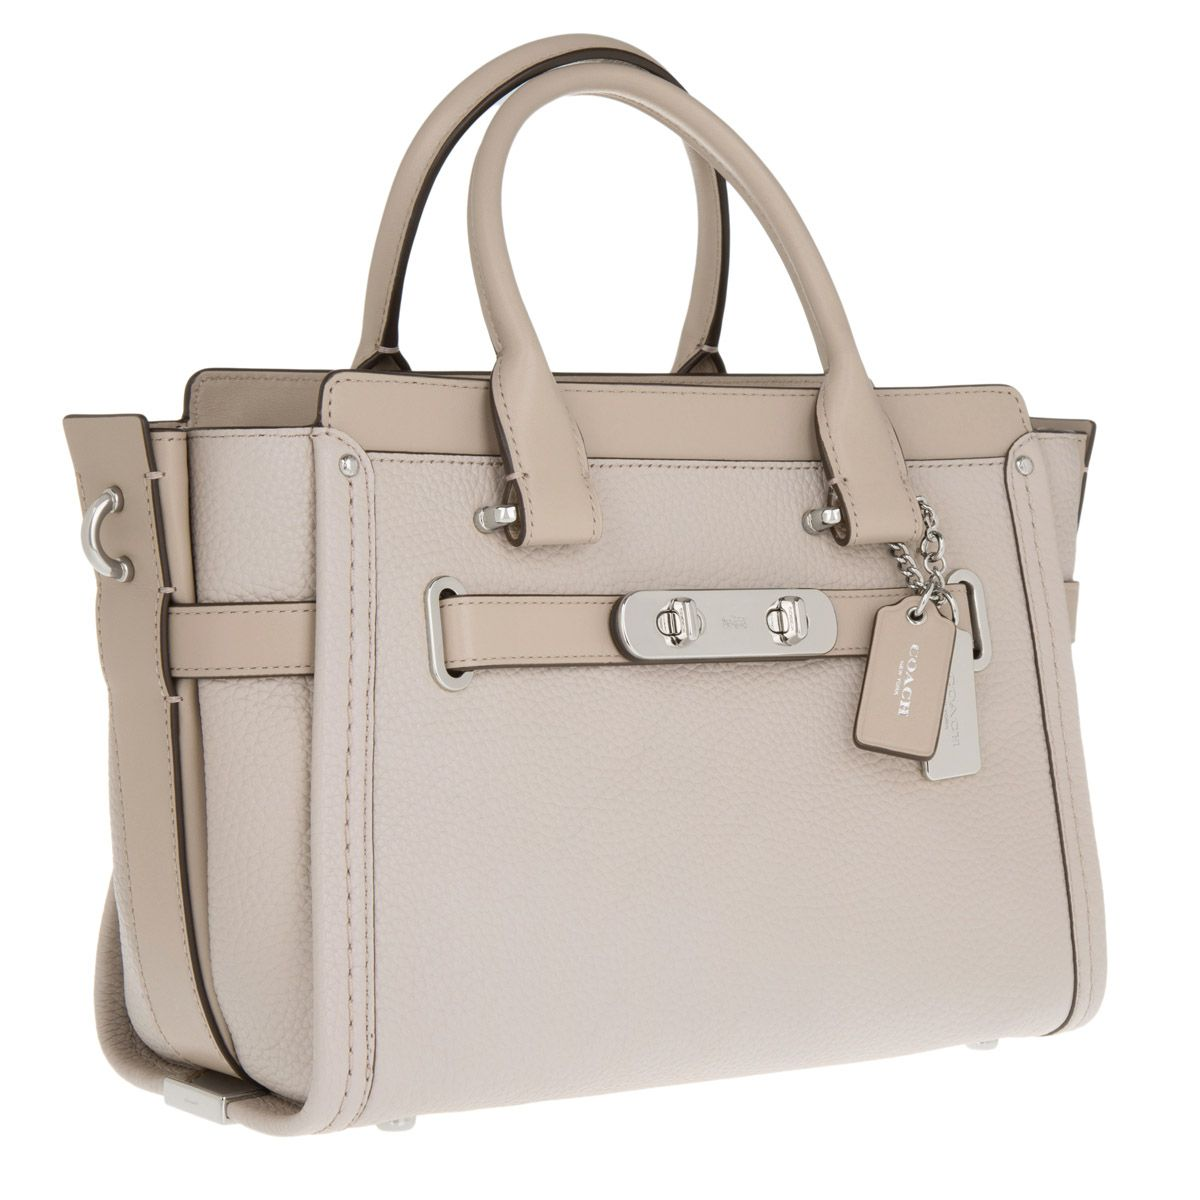 Coach Swagger 27 Carryall Bag in Heather Grey Calfskin Coach